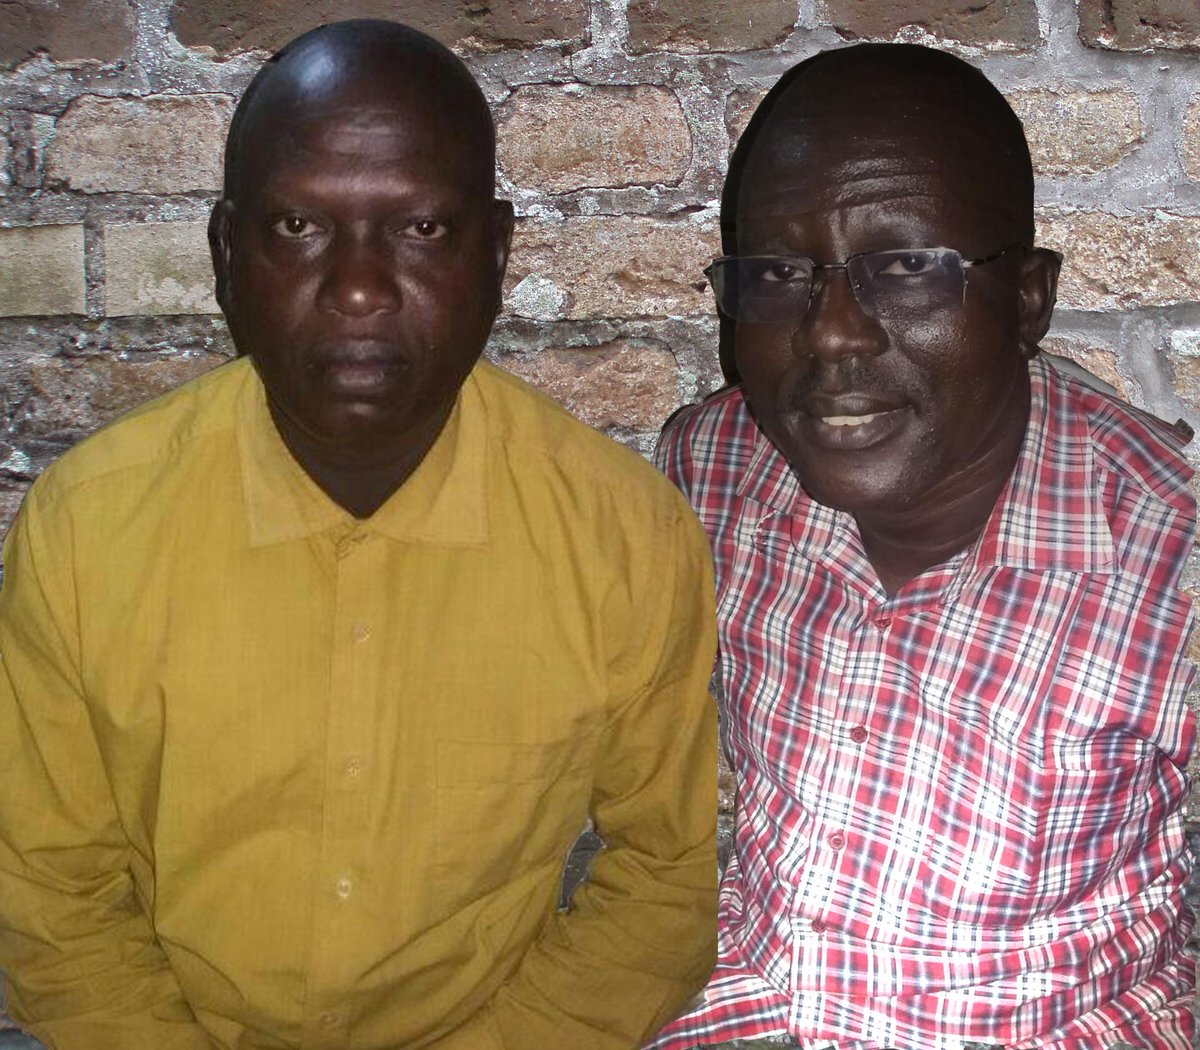 http://t.co/UBjHMbMz3f #Sudan: Rev Yat Michael and Rev Peter Reith released #setthemfree http://t.co/IUjG530jIy